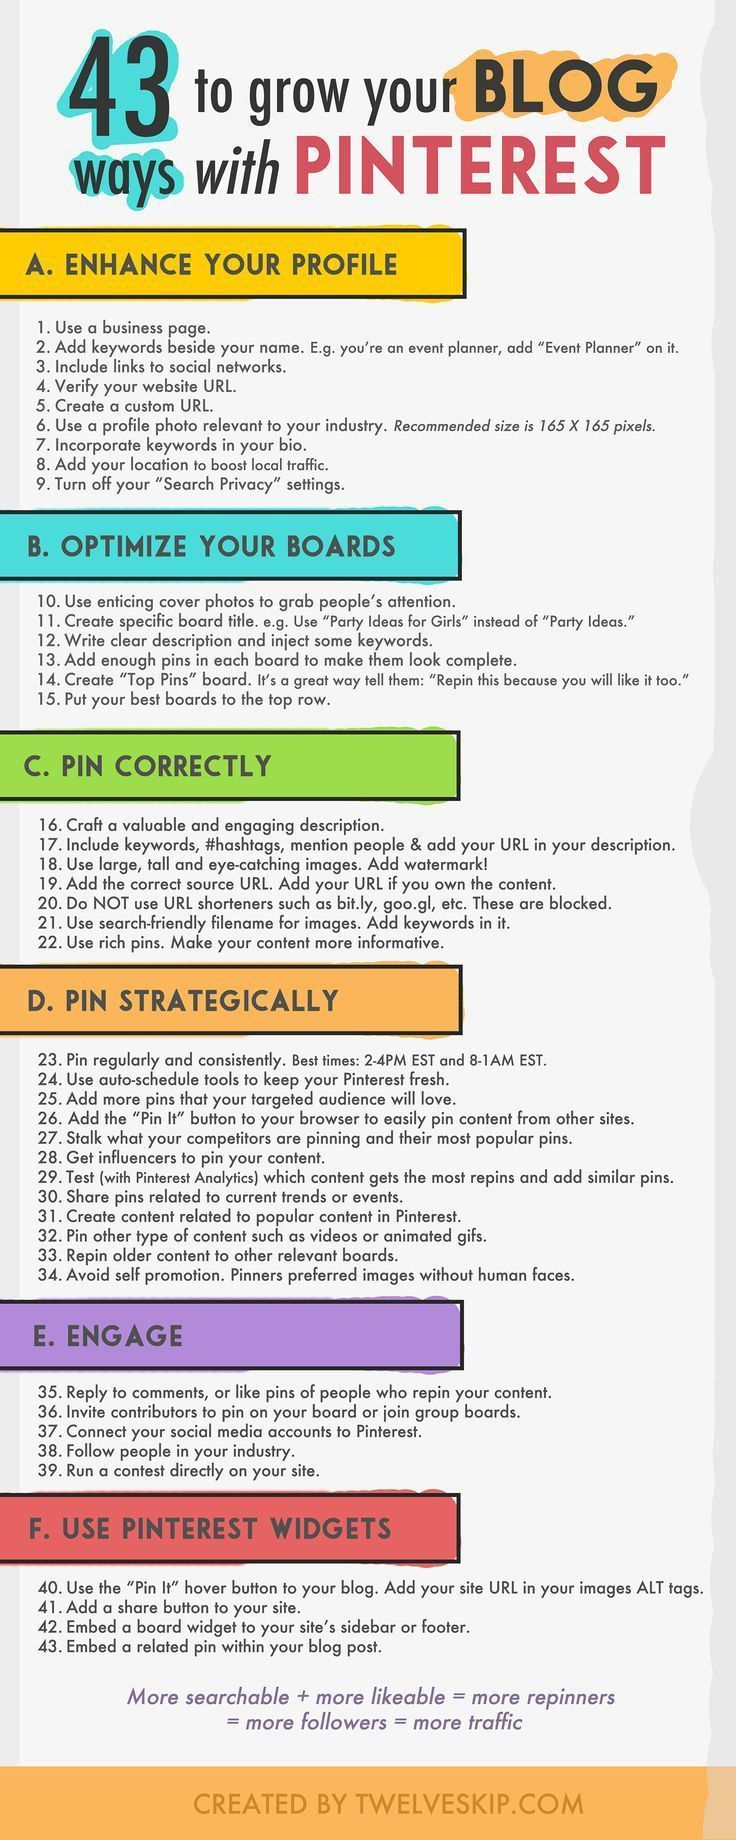 43 ways to grow your blog with pinterest blogging